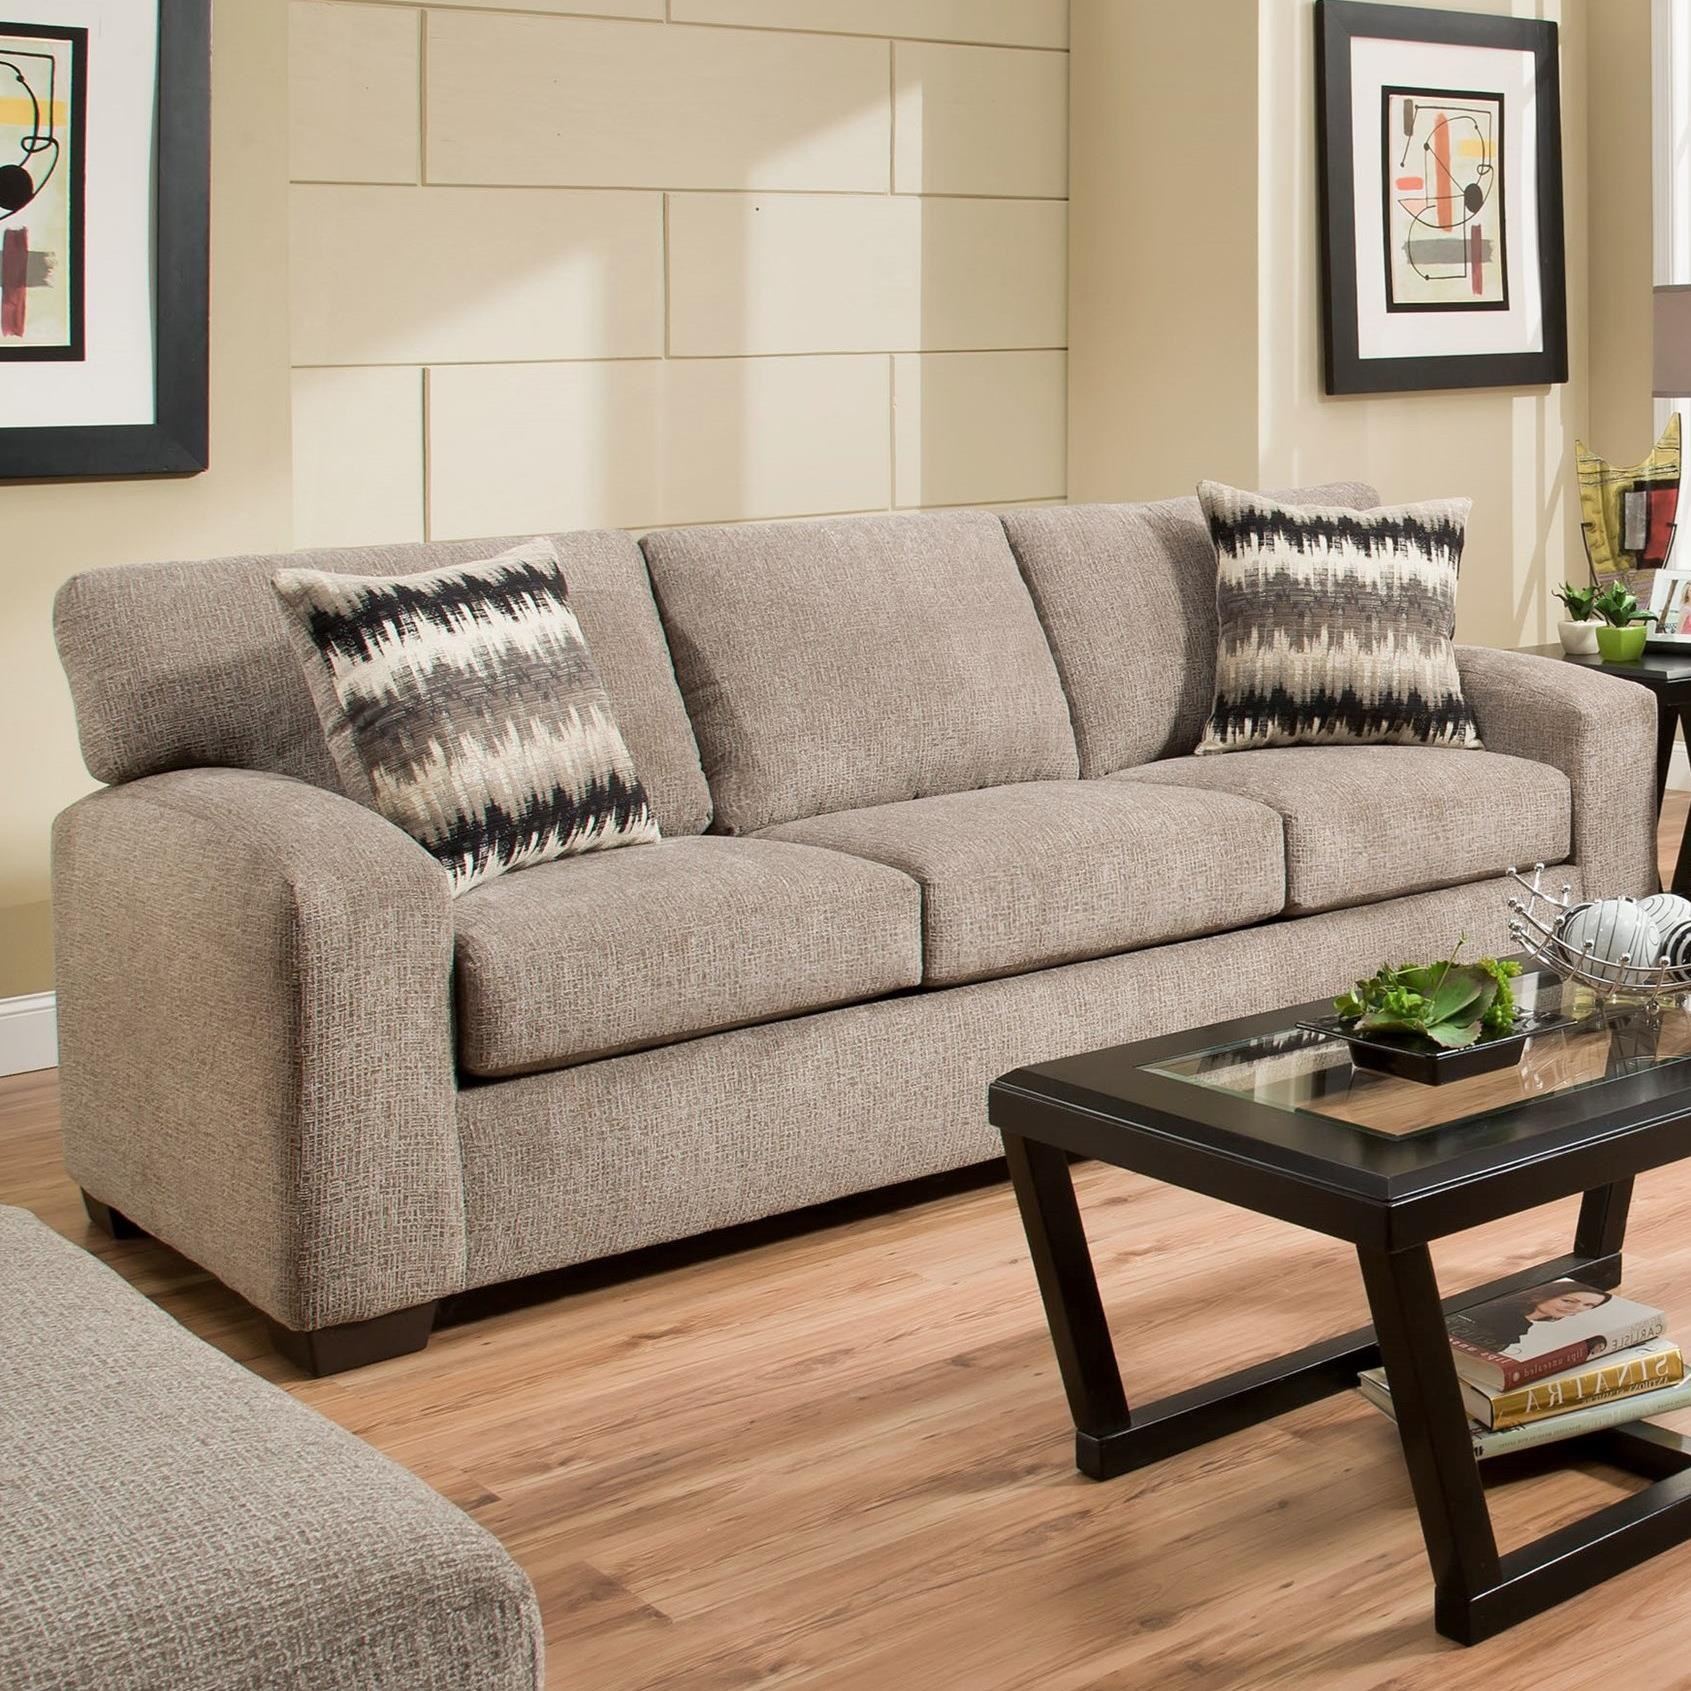 5250 Sofa by Peak Living at Prime Brothers Furniture